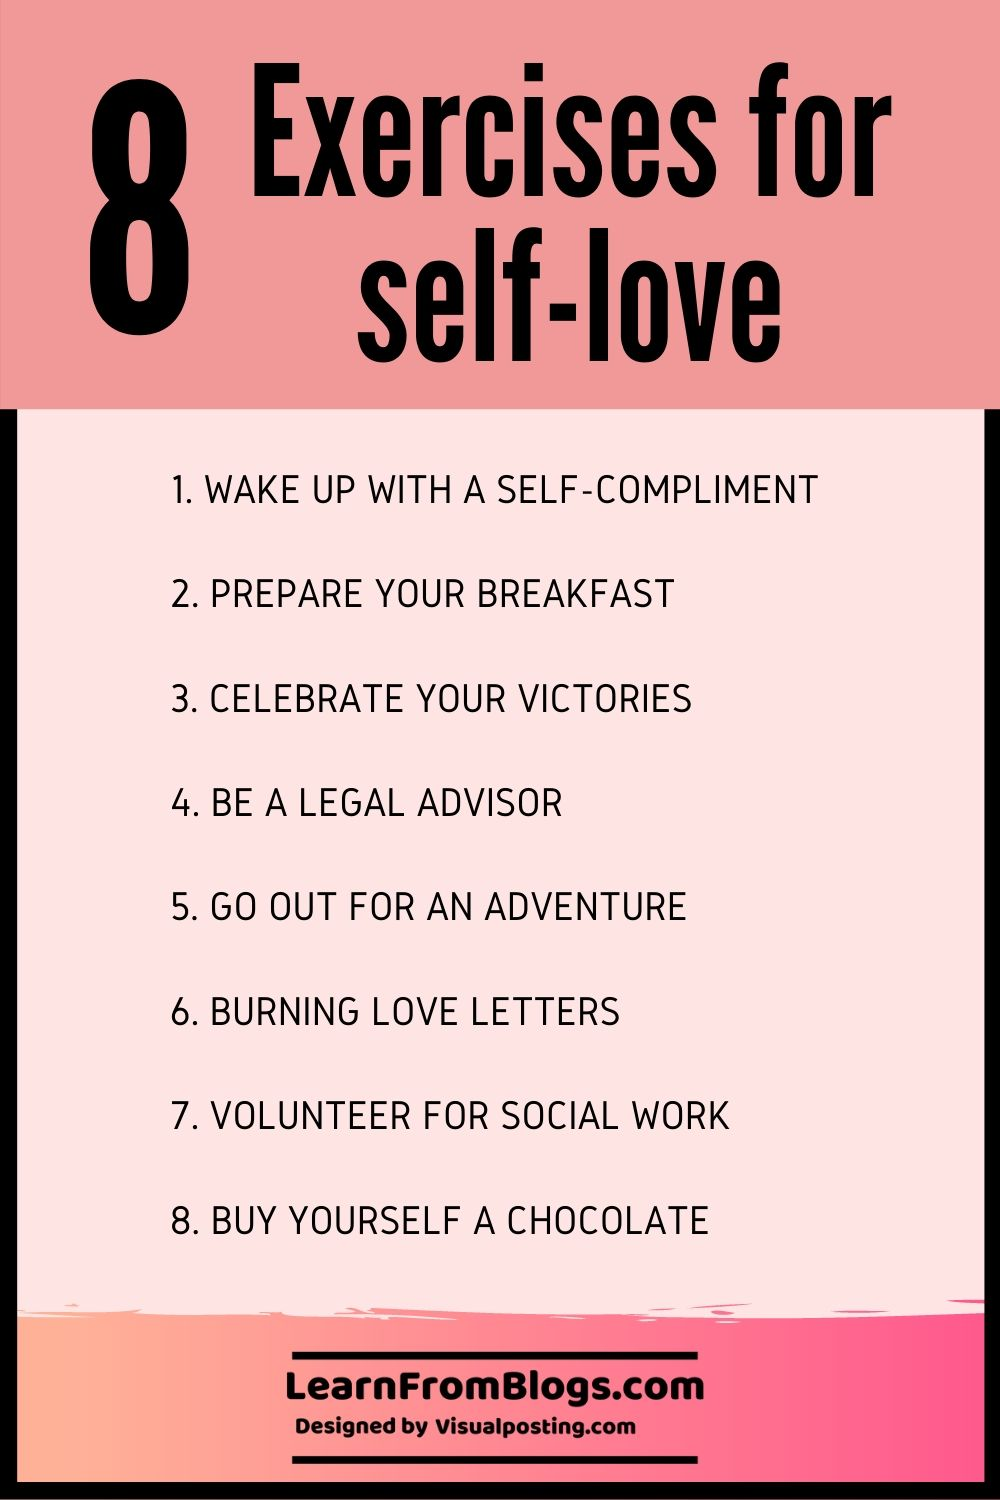 8 exercises for self-love - Learnfromblogs.com.jpg